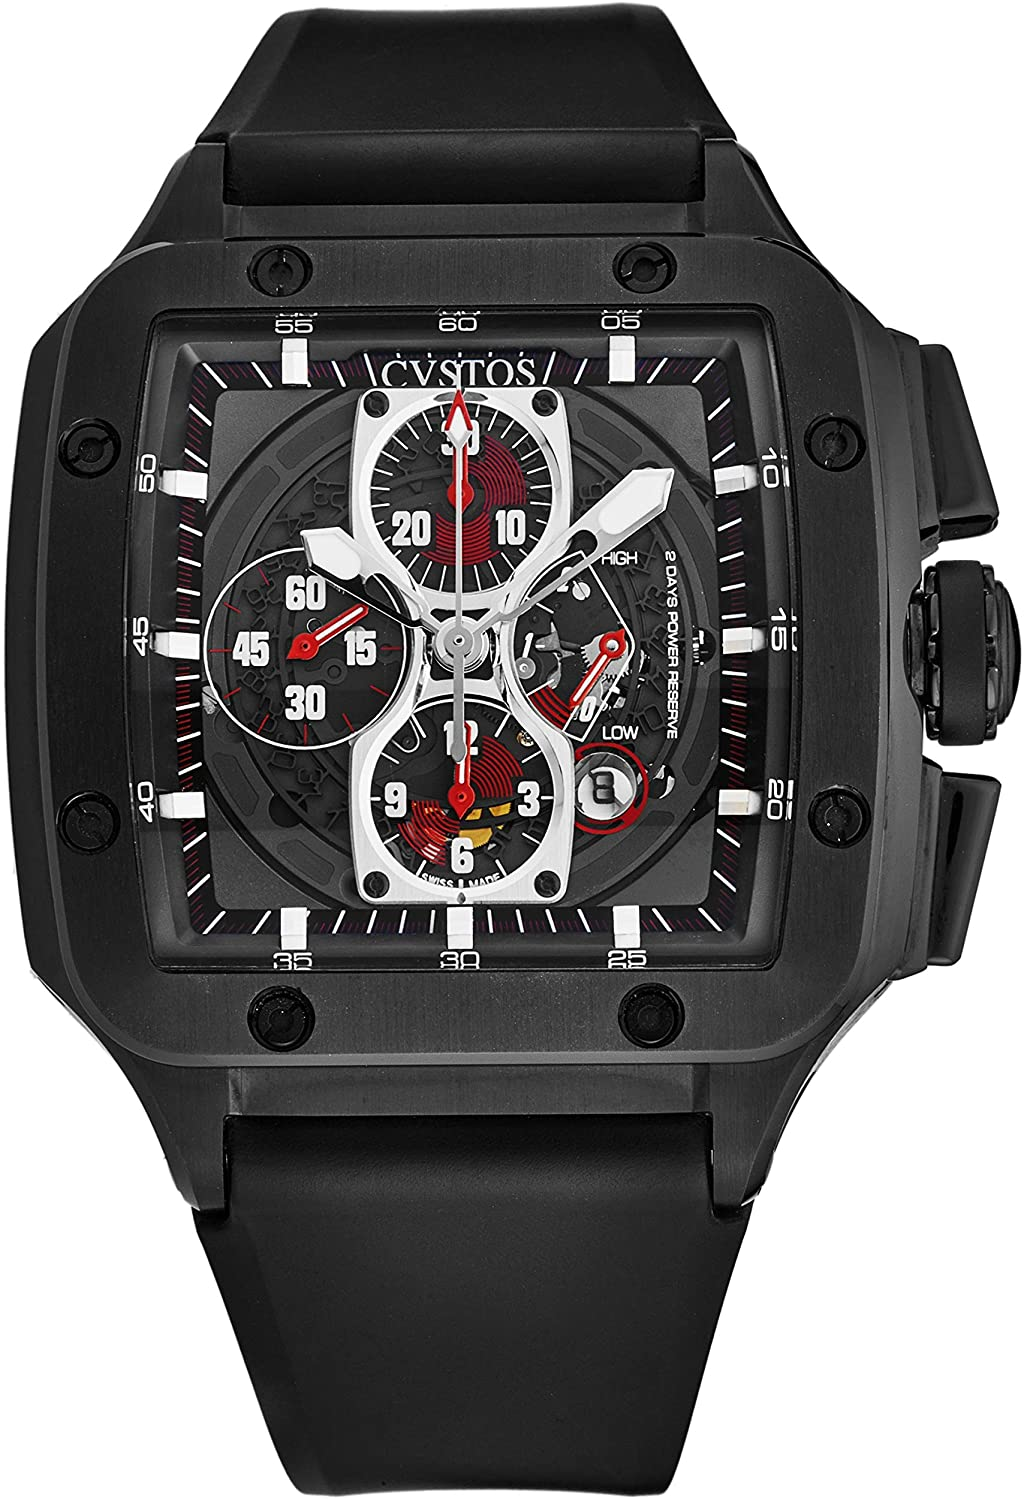 Cvstos Men's 'Evosquare 50' 2 Day Power Reserve Automatic Chronograph Watch - Black Dial with Luminous Hands and Date - Sapphire Crystal and Black Rubber Strap 8031CHE50AN 01